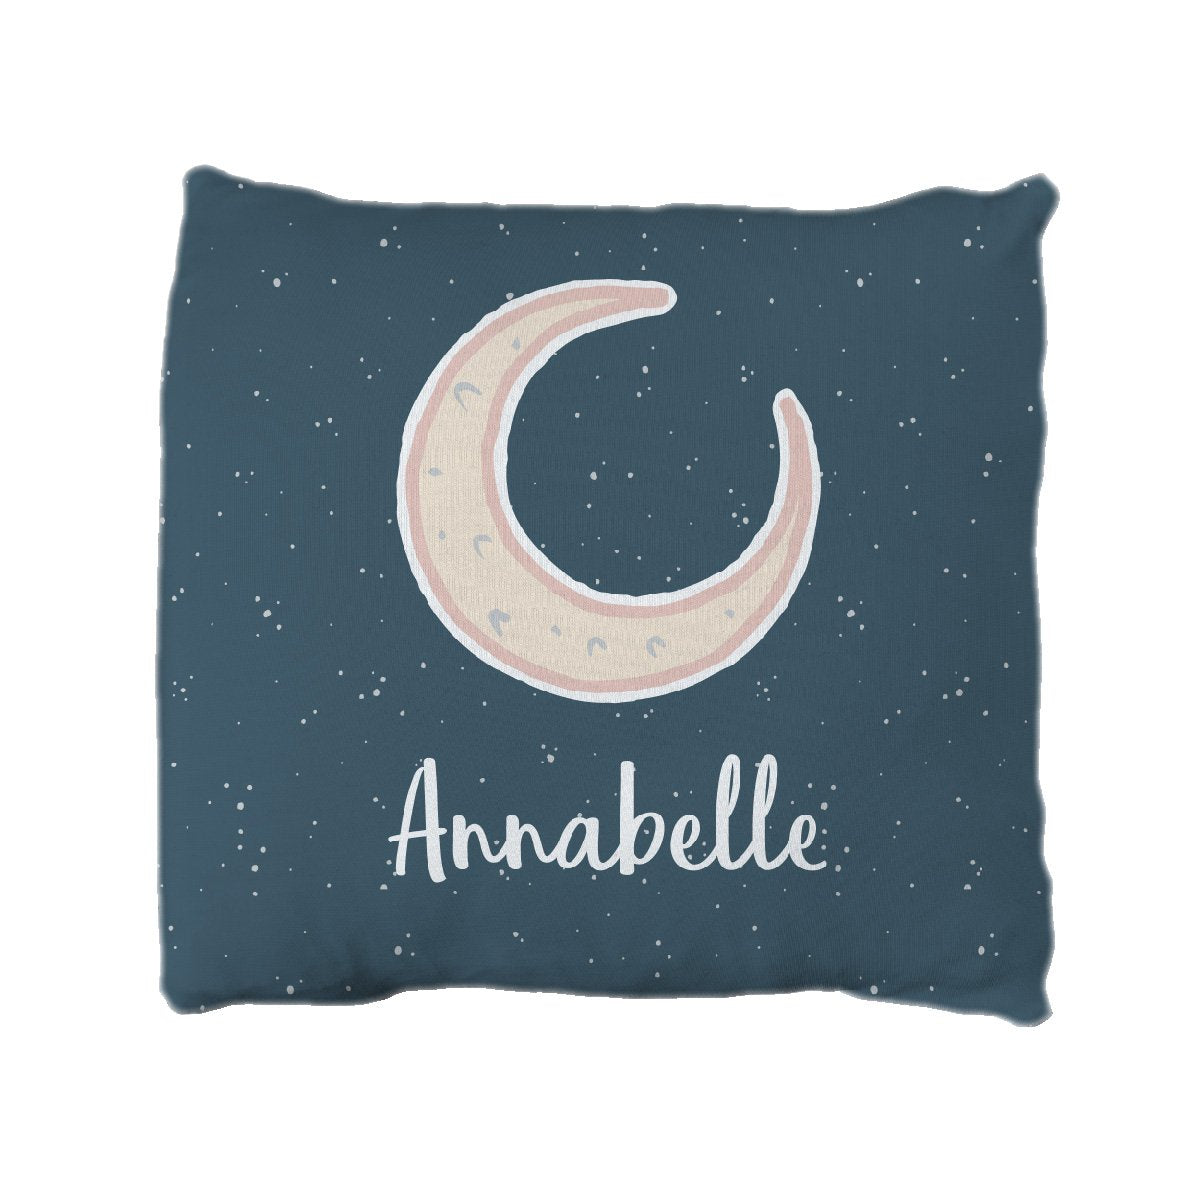 Annabelle's Outer Space | Big Kid Throw Pillow